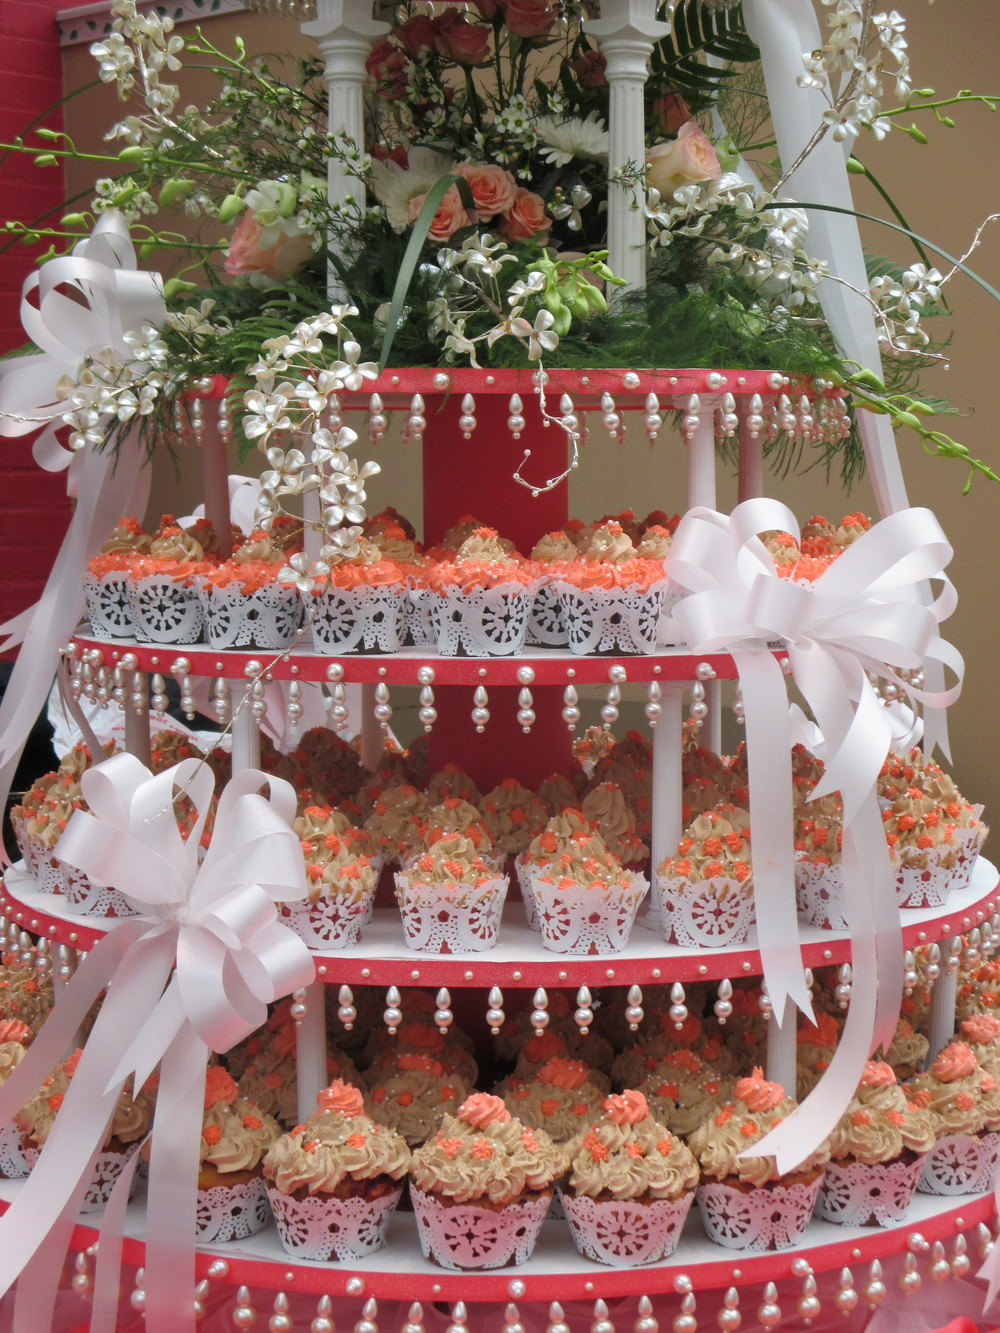 Choose florals and desserts to match your event color scheme.